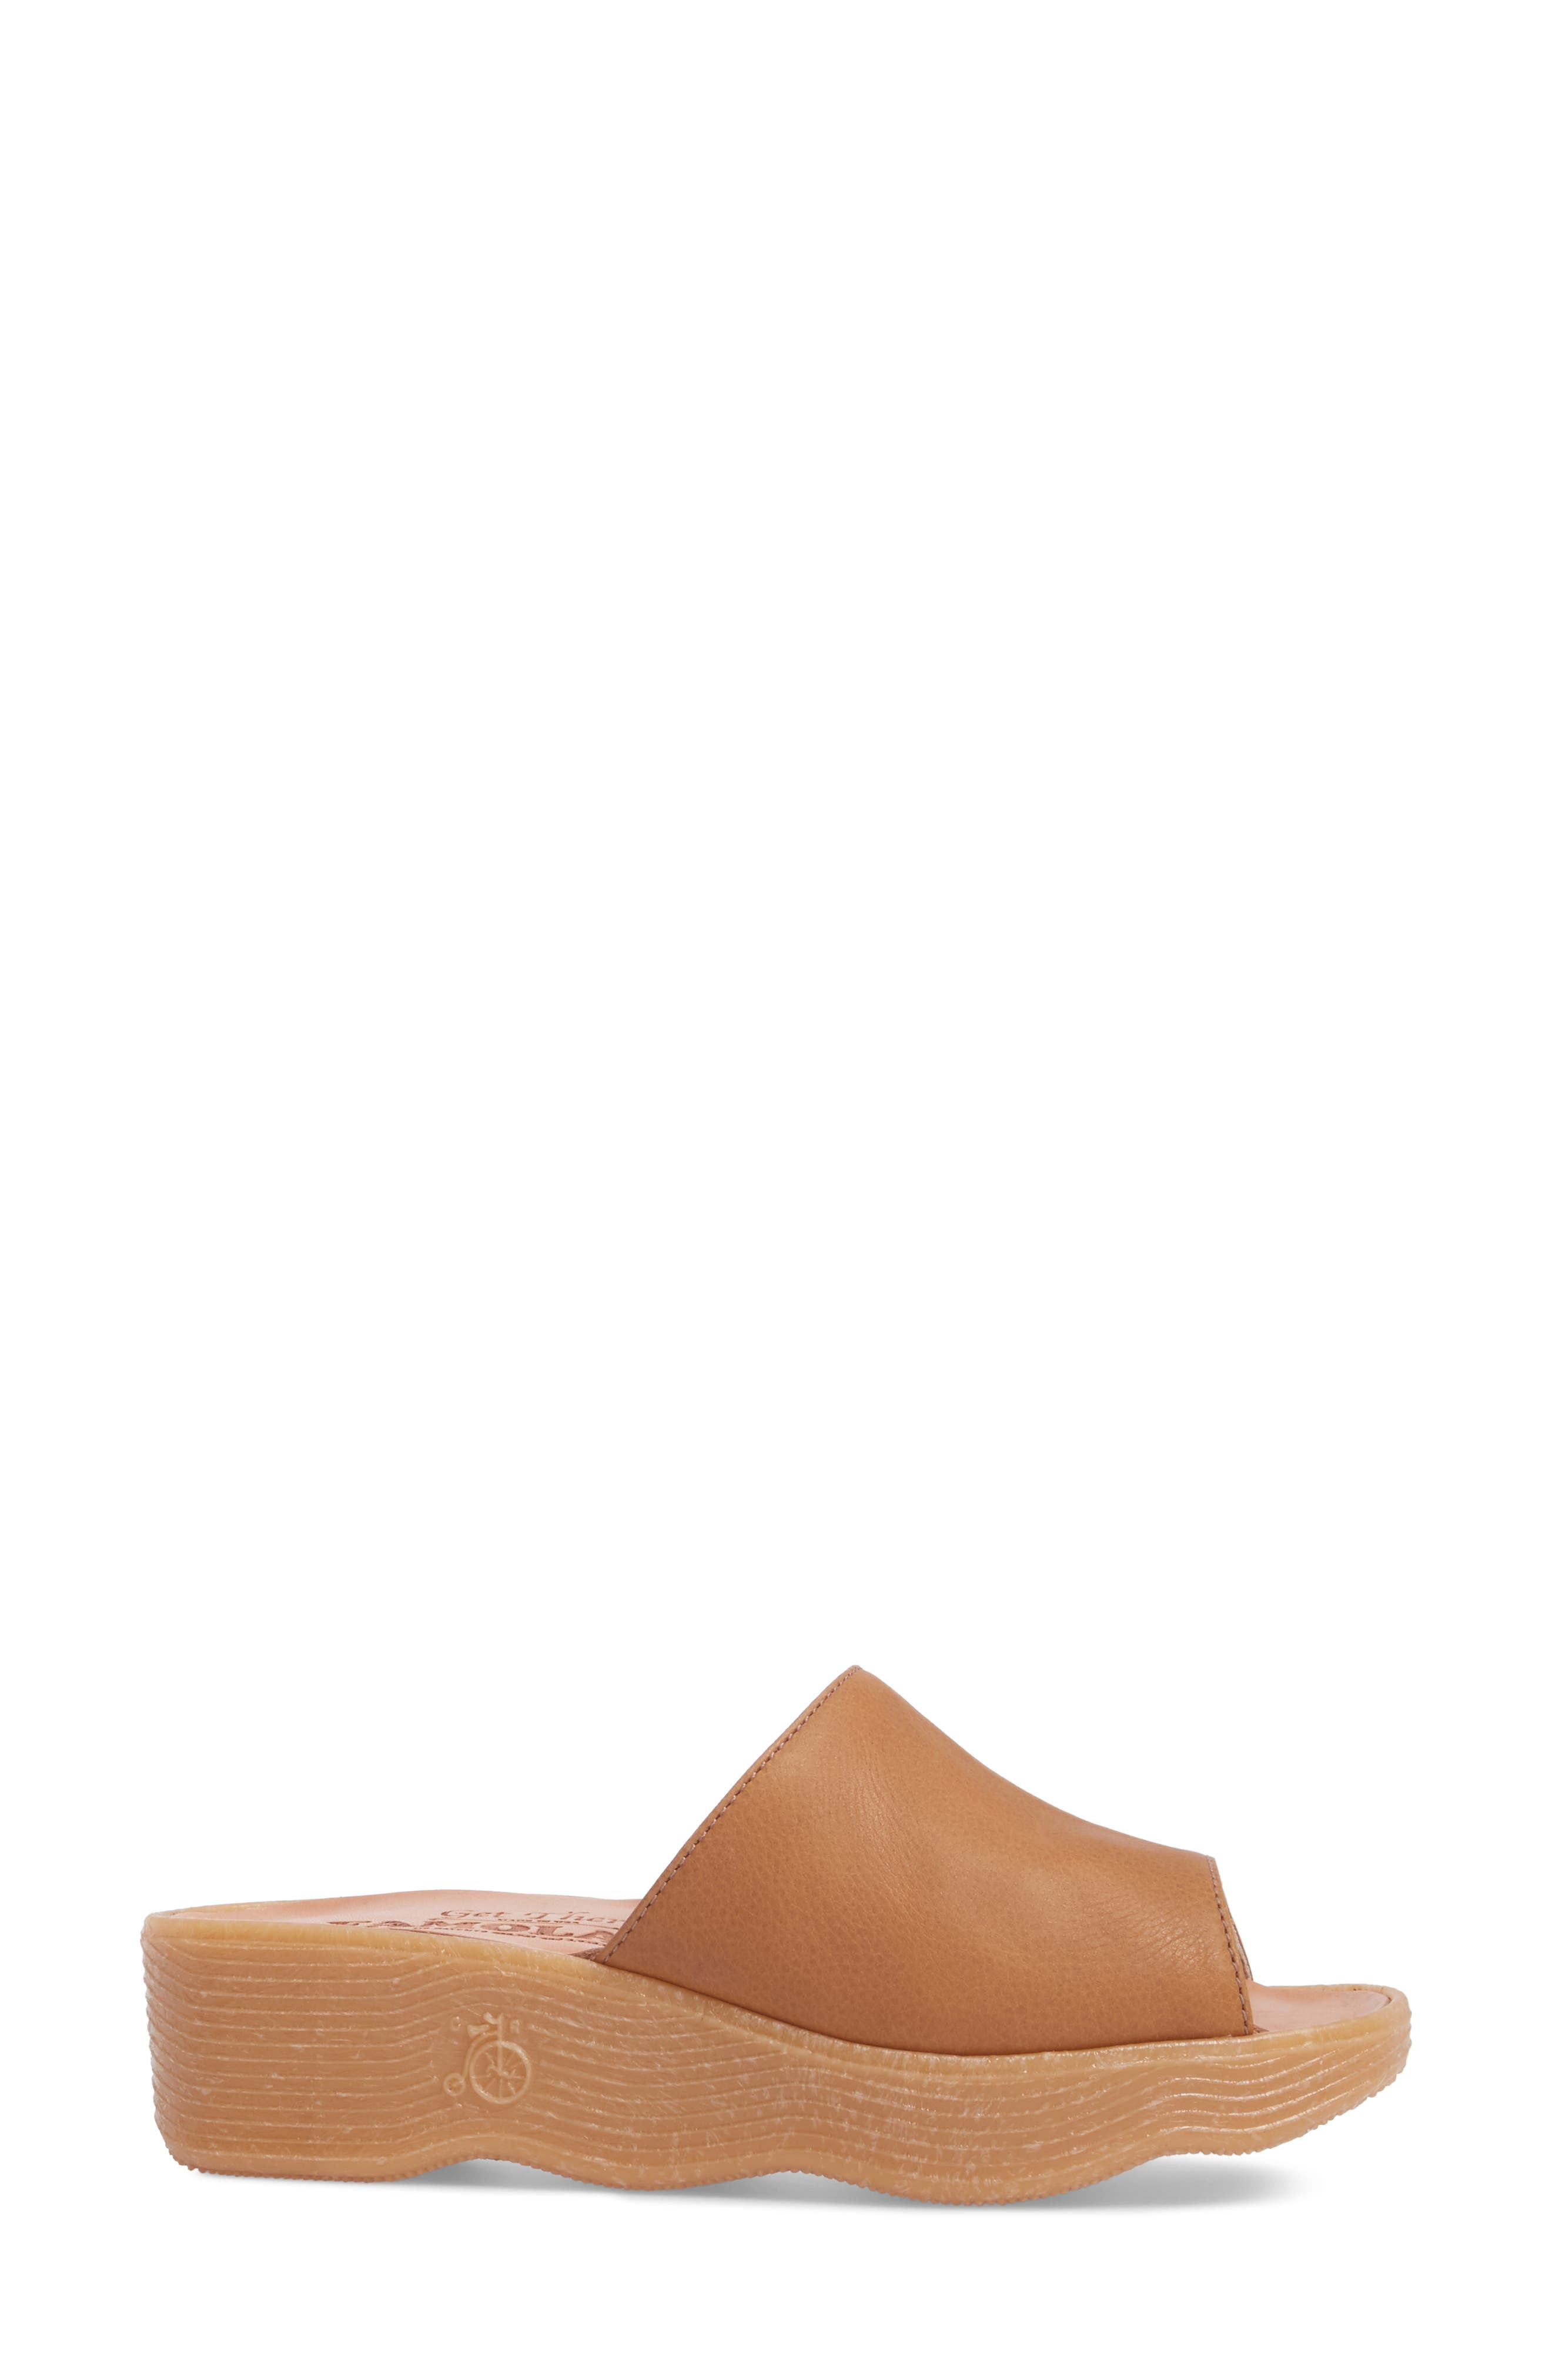 Slide N Sleek Wedge Slide Sandal,                             Alternate thumbnail 3, color,                             COGNAC LEATHER